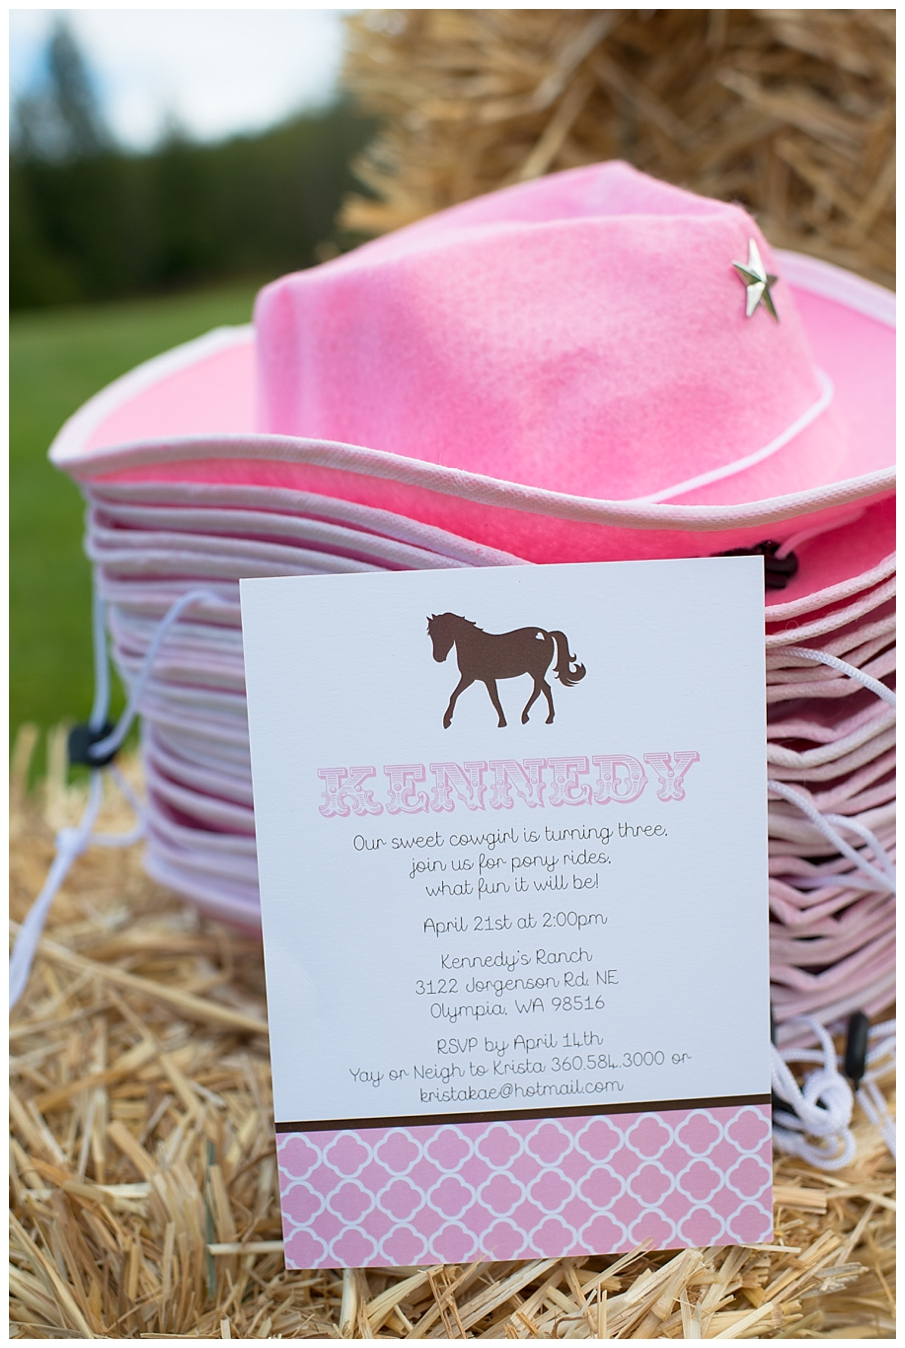 A Pink And Brown Pony Party Hoopla Events Krista O Byrne